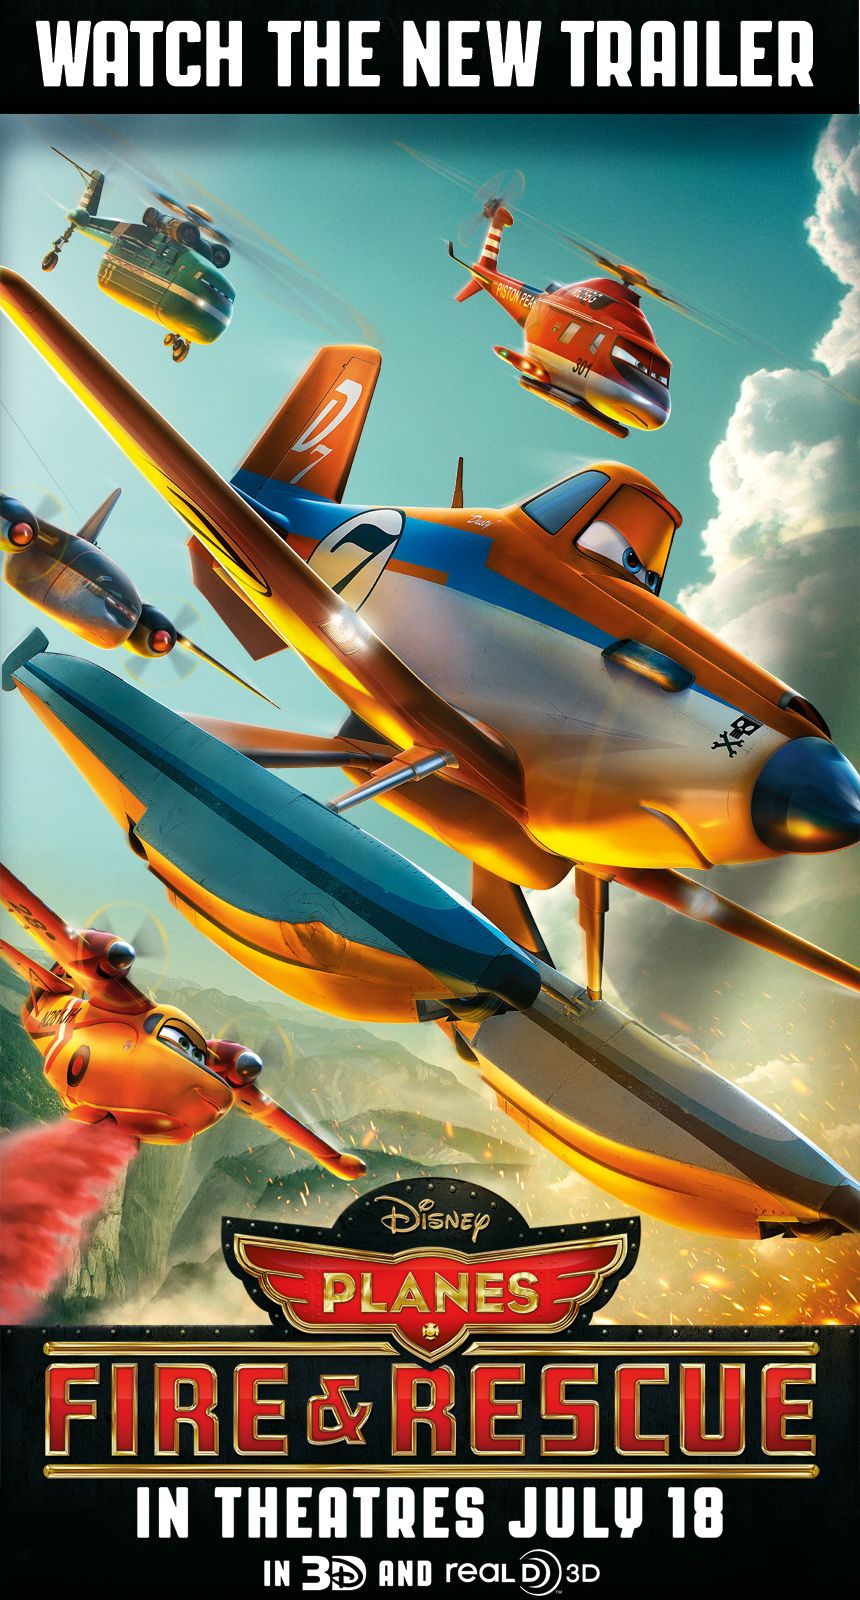 Get your first look at the new Disney's Planes Fire